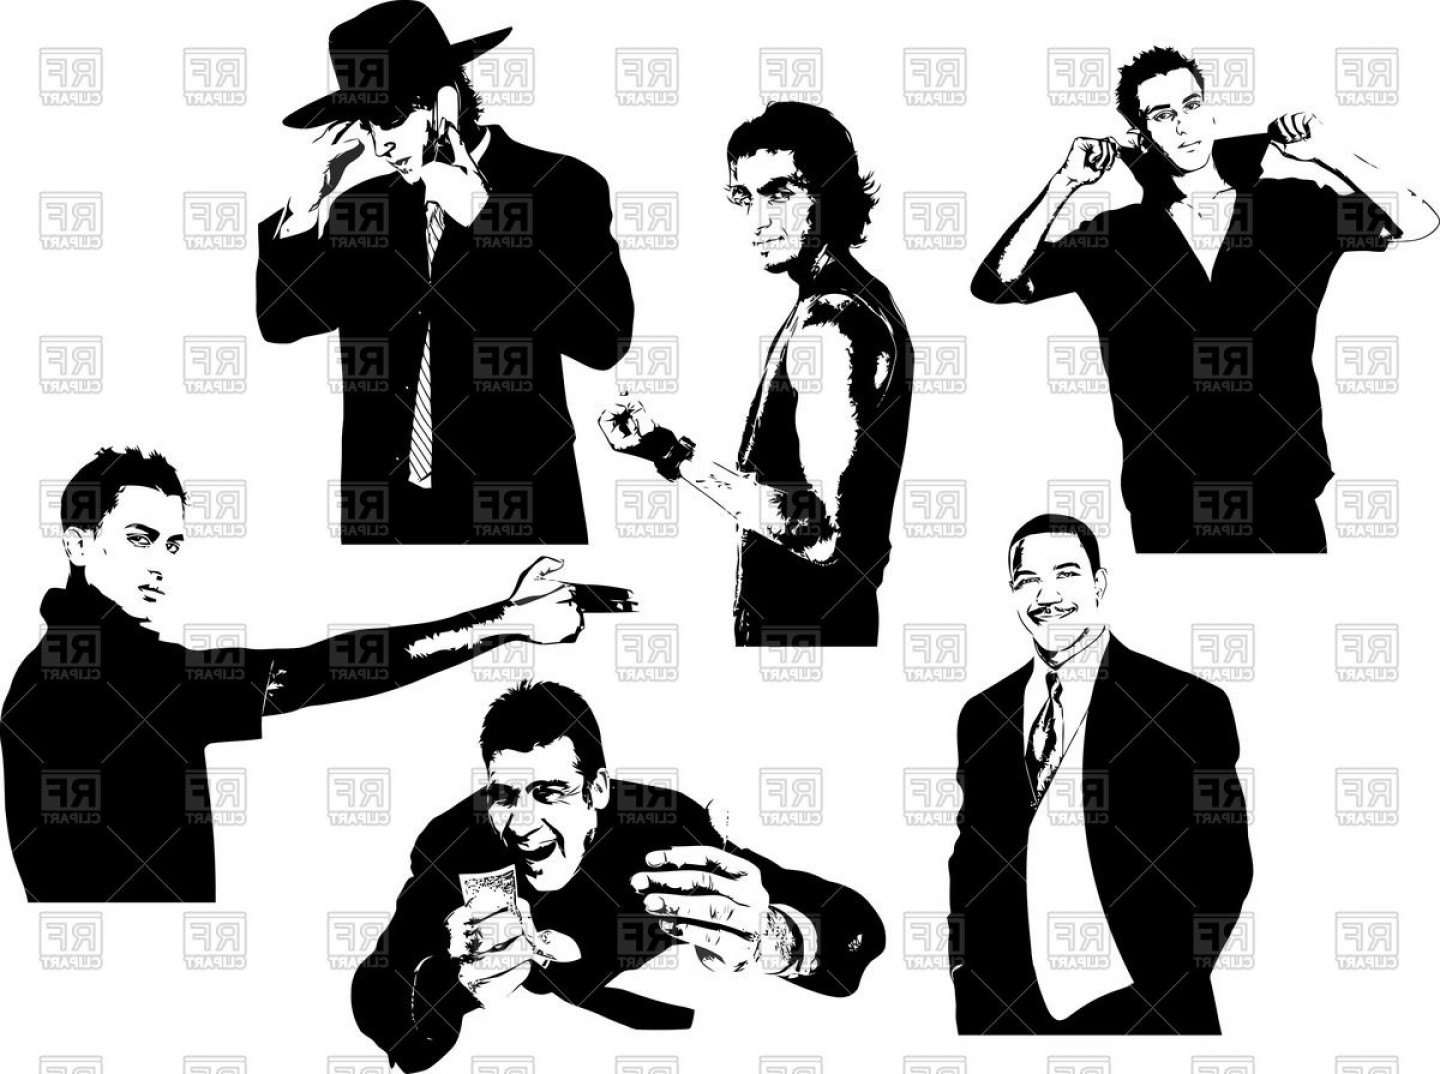 Handsome Man Vector Outline: Silhouettes Of Handsome Men Bandits And Gangsters Vector Clipart